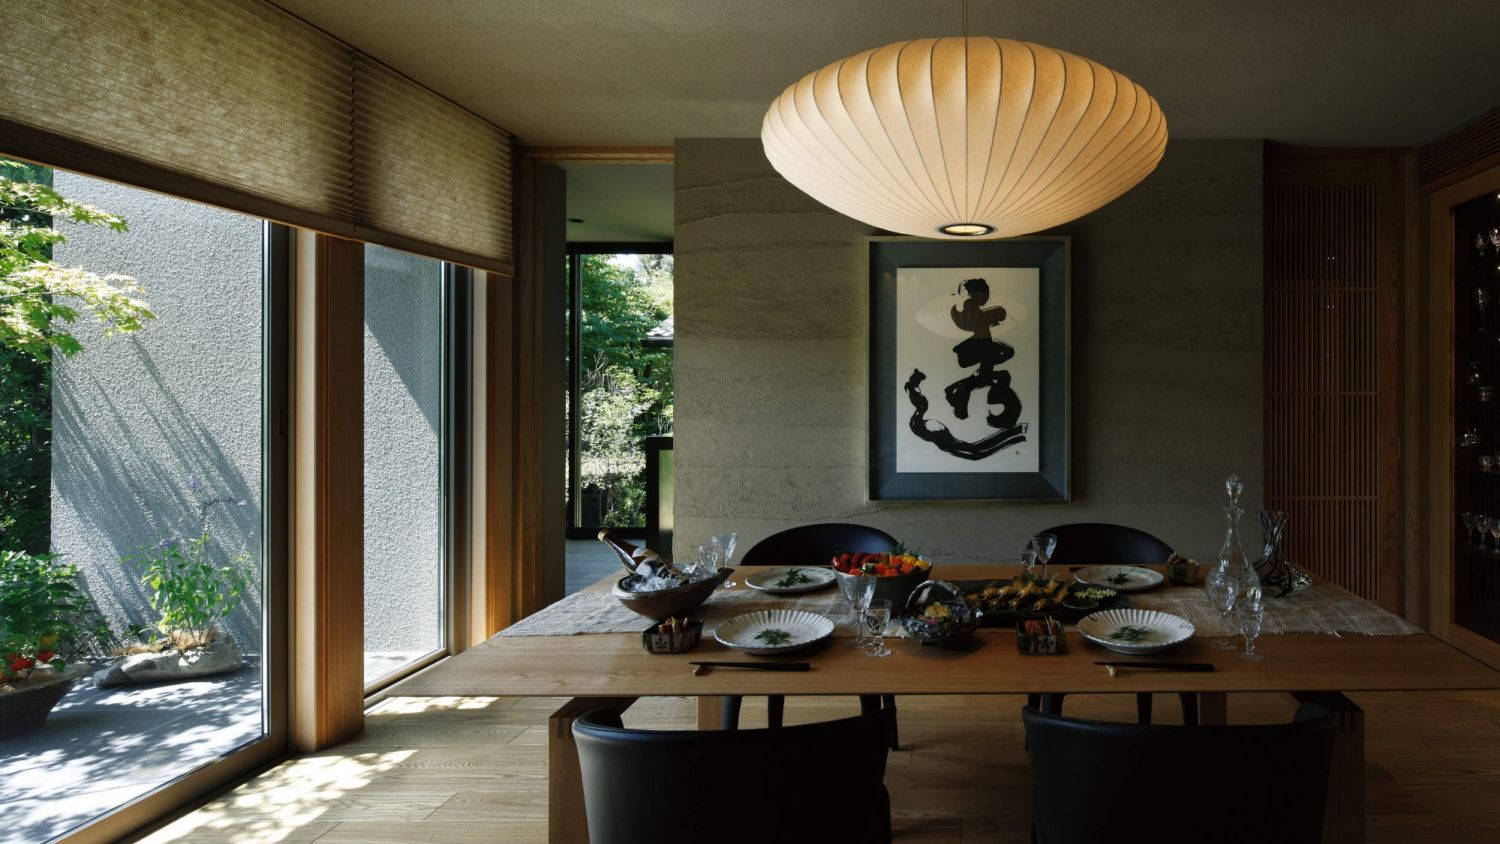 Japanese interior design trends to incorporate into your home